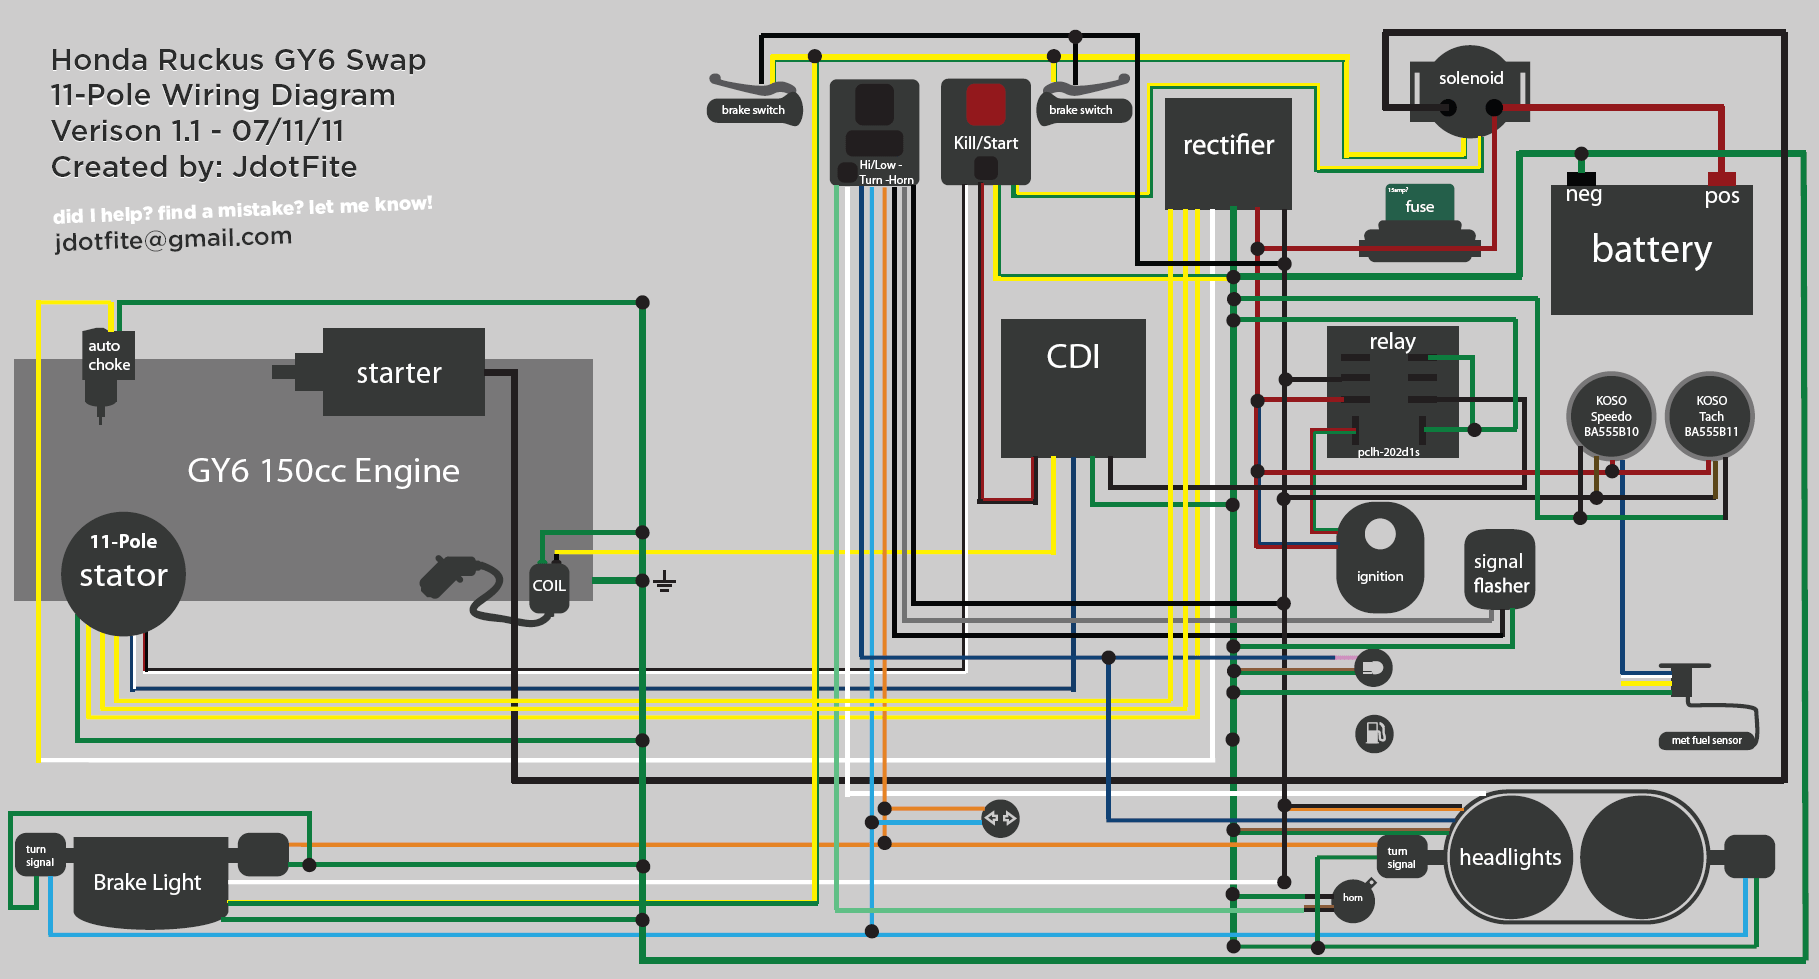 ruckus gy6 wiring diagram ruckus gy6 swap wiring diagram honda ruckus documentation chinese 150cc wire diagram at honlapkeszites.co